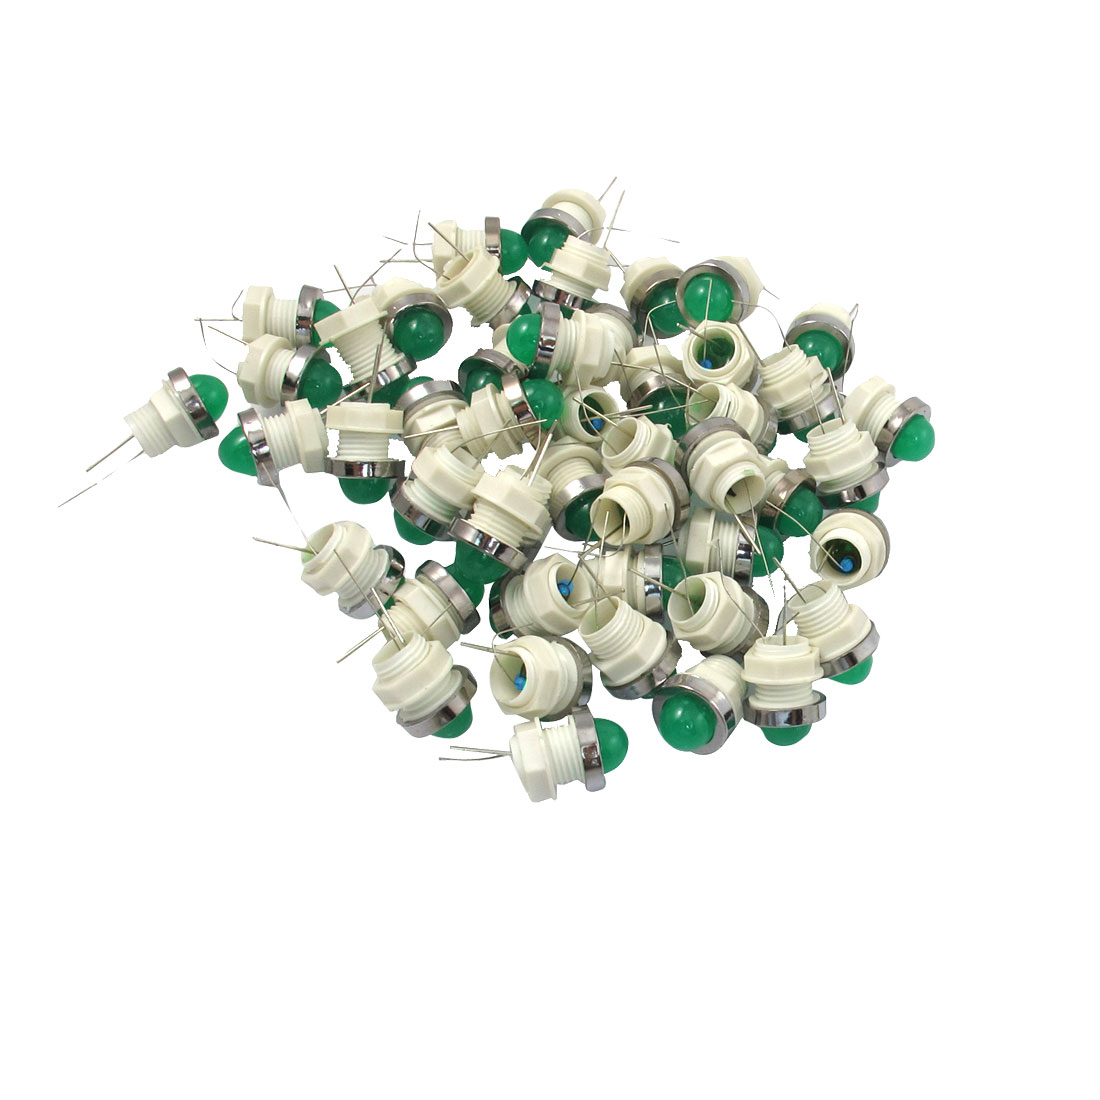 50 Pcs 10mm Threaded 24VDC Green LED Lamp Indicator Pilot Light AD11-10/20